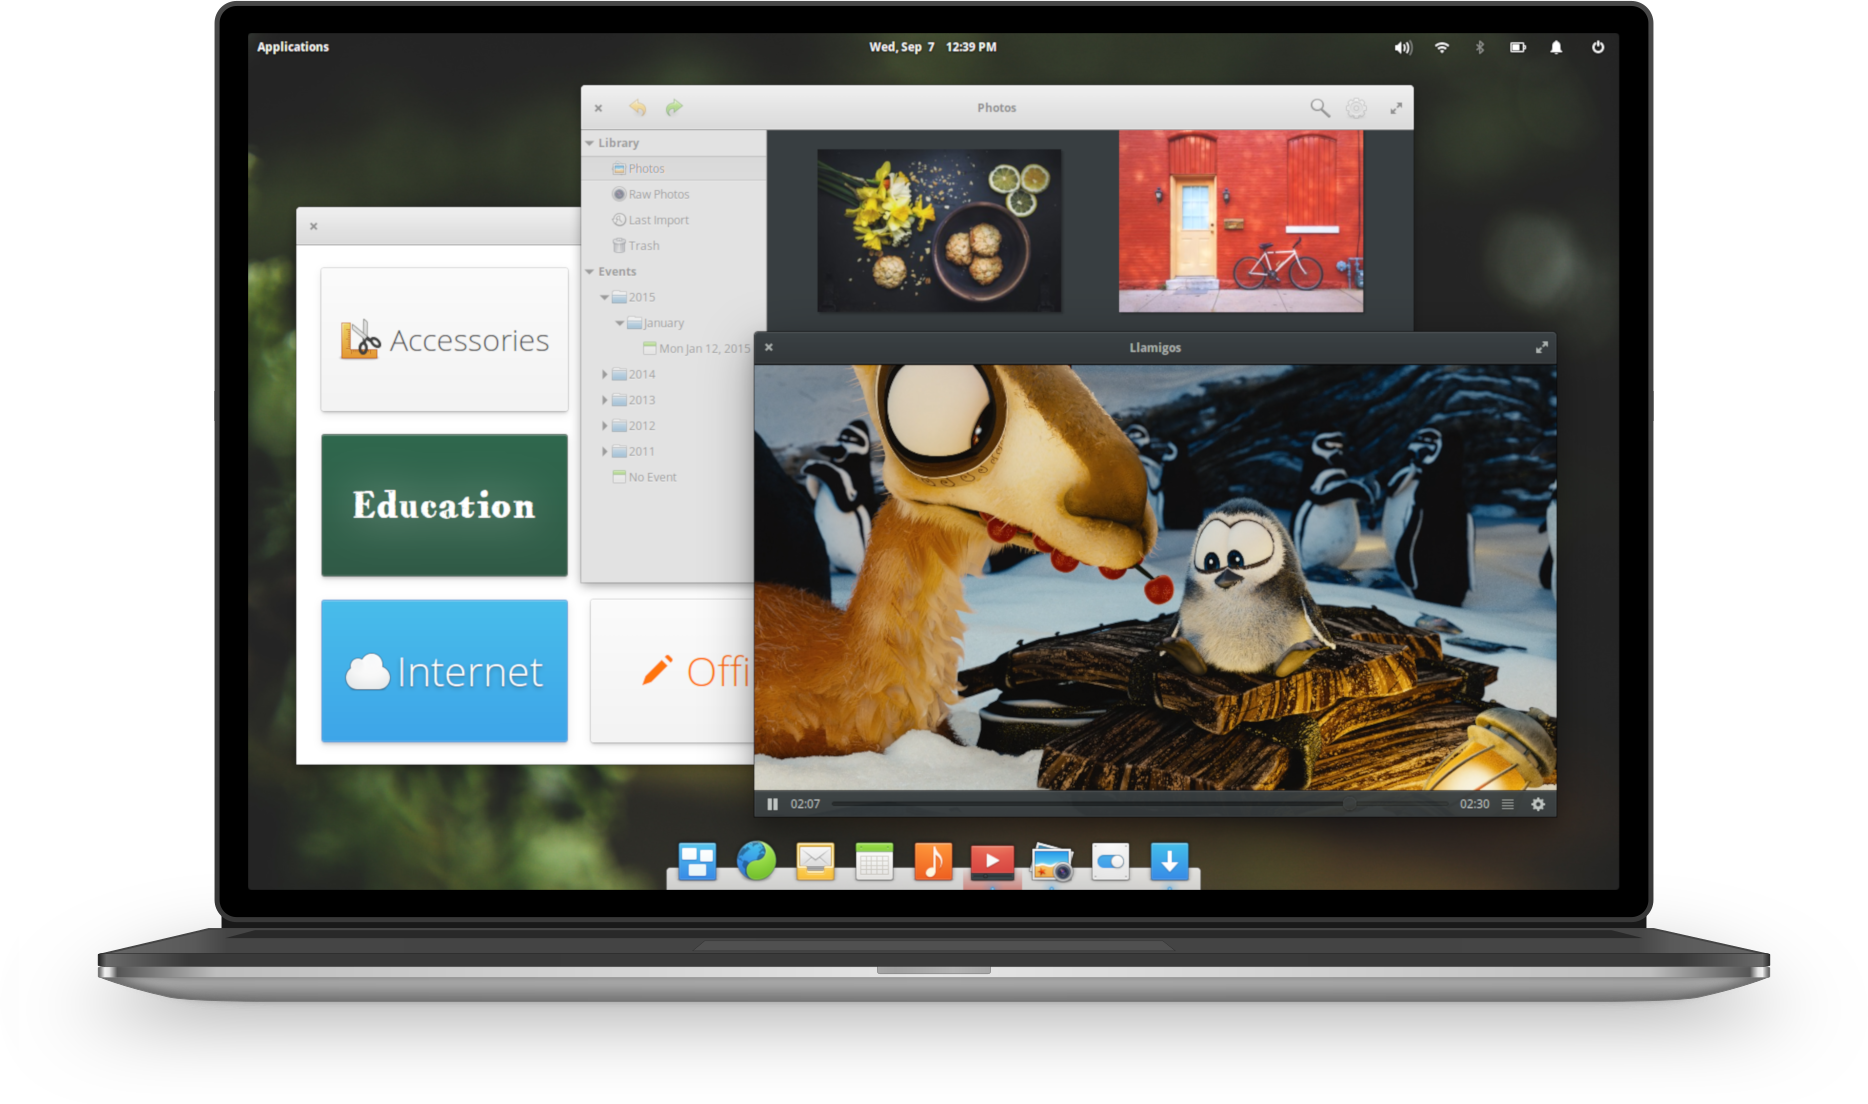 OS replacement for macOS and Windows – The Graphic Mac